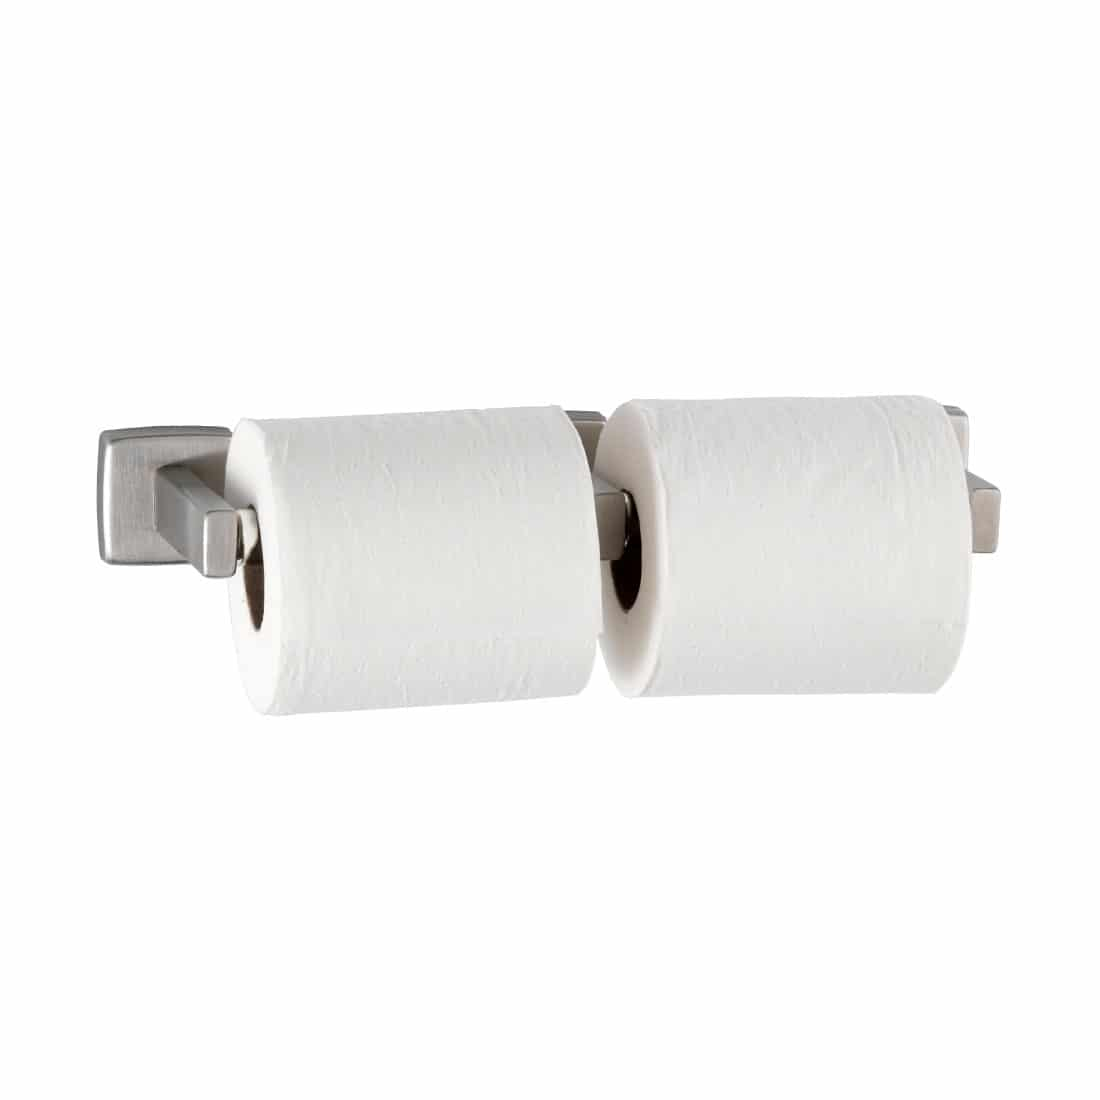 Picture of: Bobrick Double Roll Toilet Tissue Dispenser B 686 Partition Plus